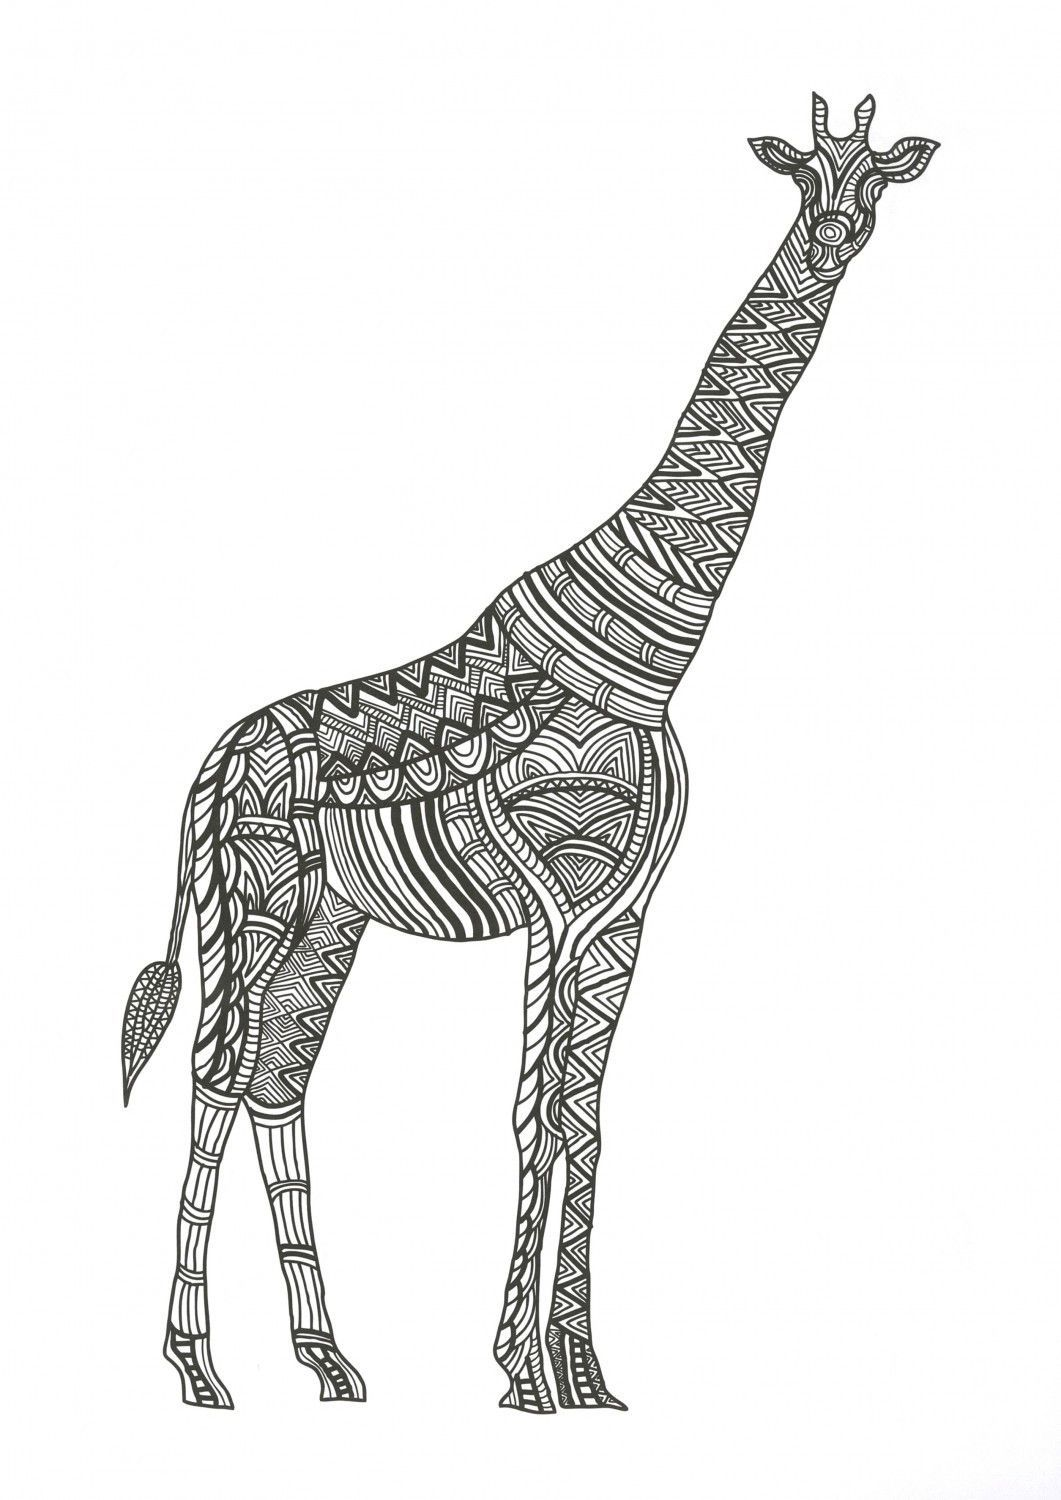 Coloriage Adulte Girafe.Zen Coloring Animals Adult Coloring Book Coloriage